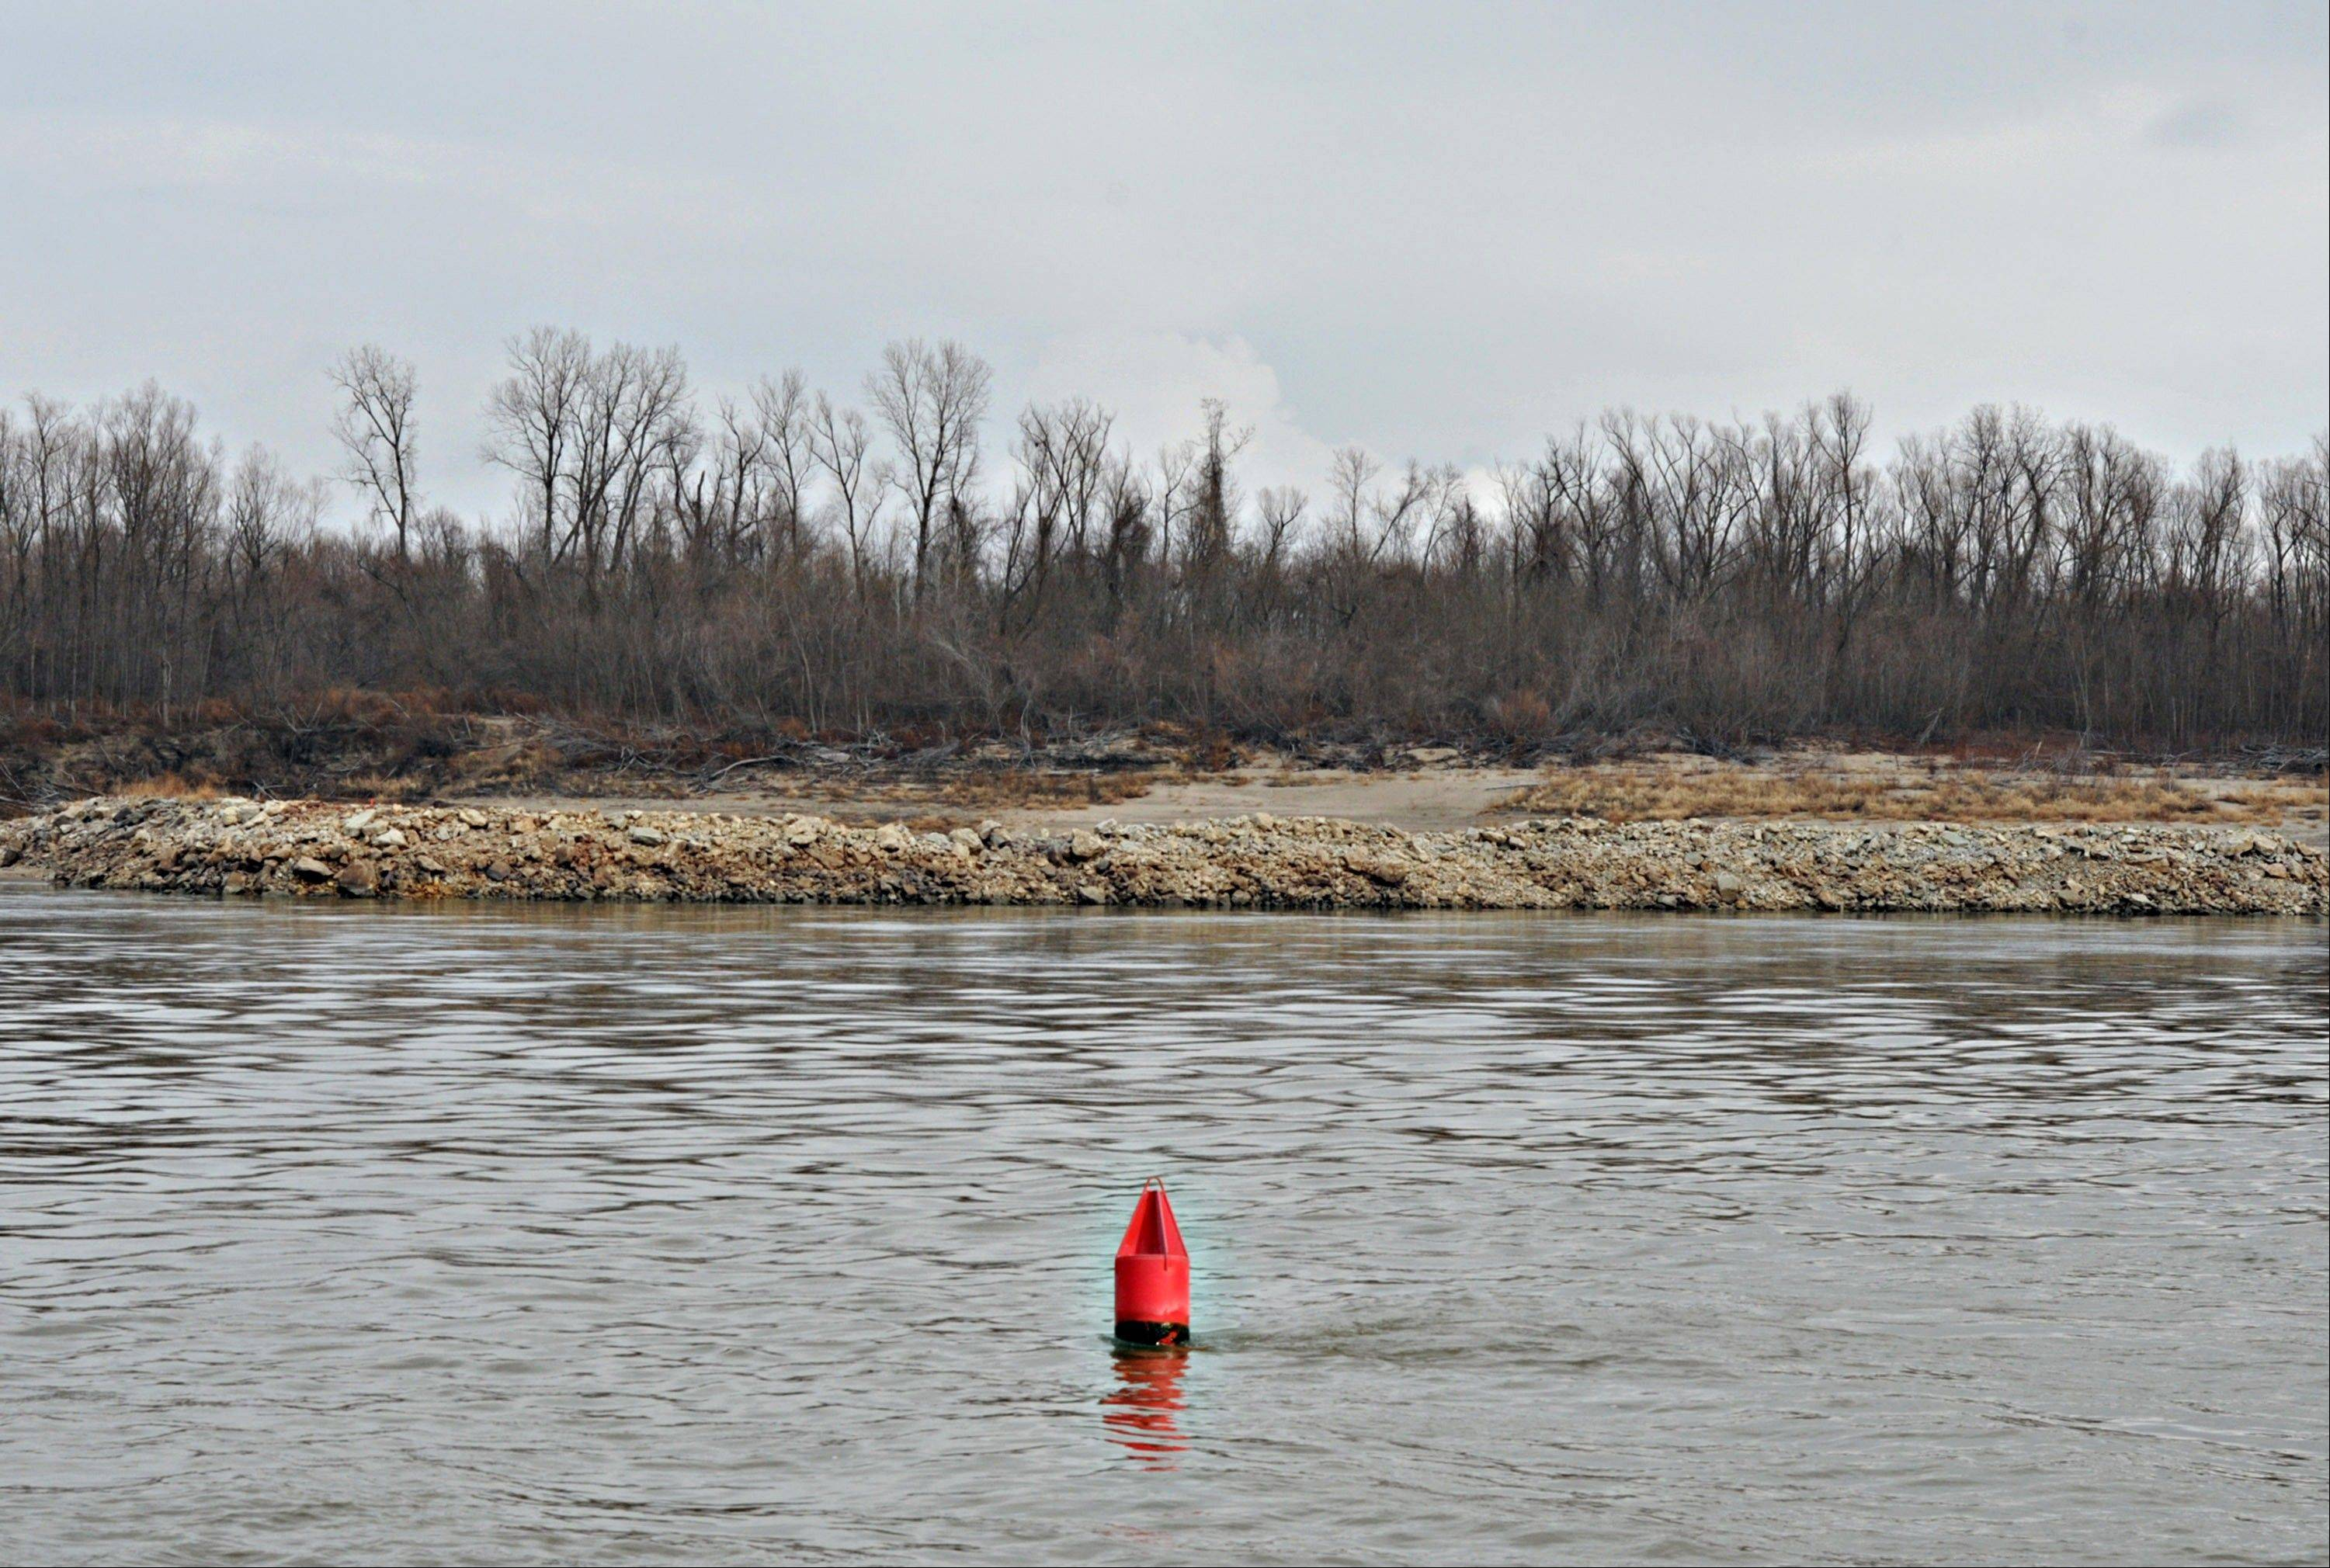 A floating buoy marks the edge of the shipping channel on the Mississippi River south of St. Louis, Missouri. Barges carrying grain, soybeans, coal, oil and other commodities on the Mississippi River have started to reduce their loads to navigate waters shrunk by the worst drought in 50 years.